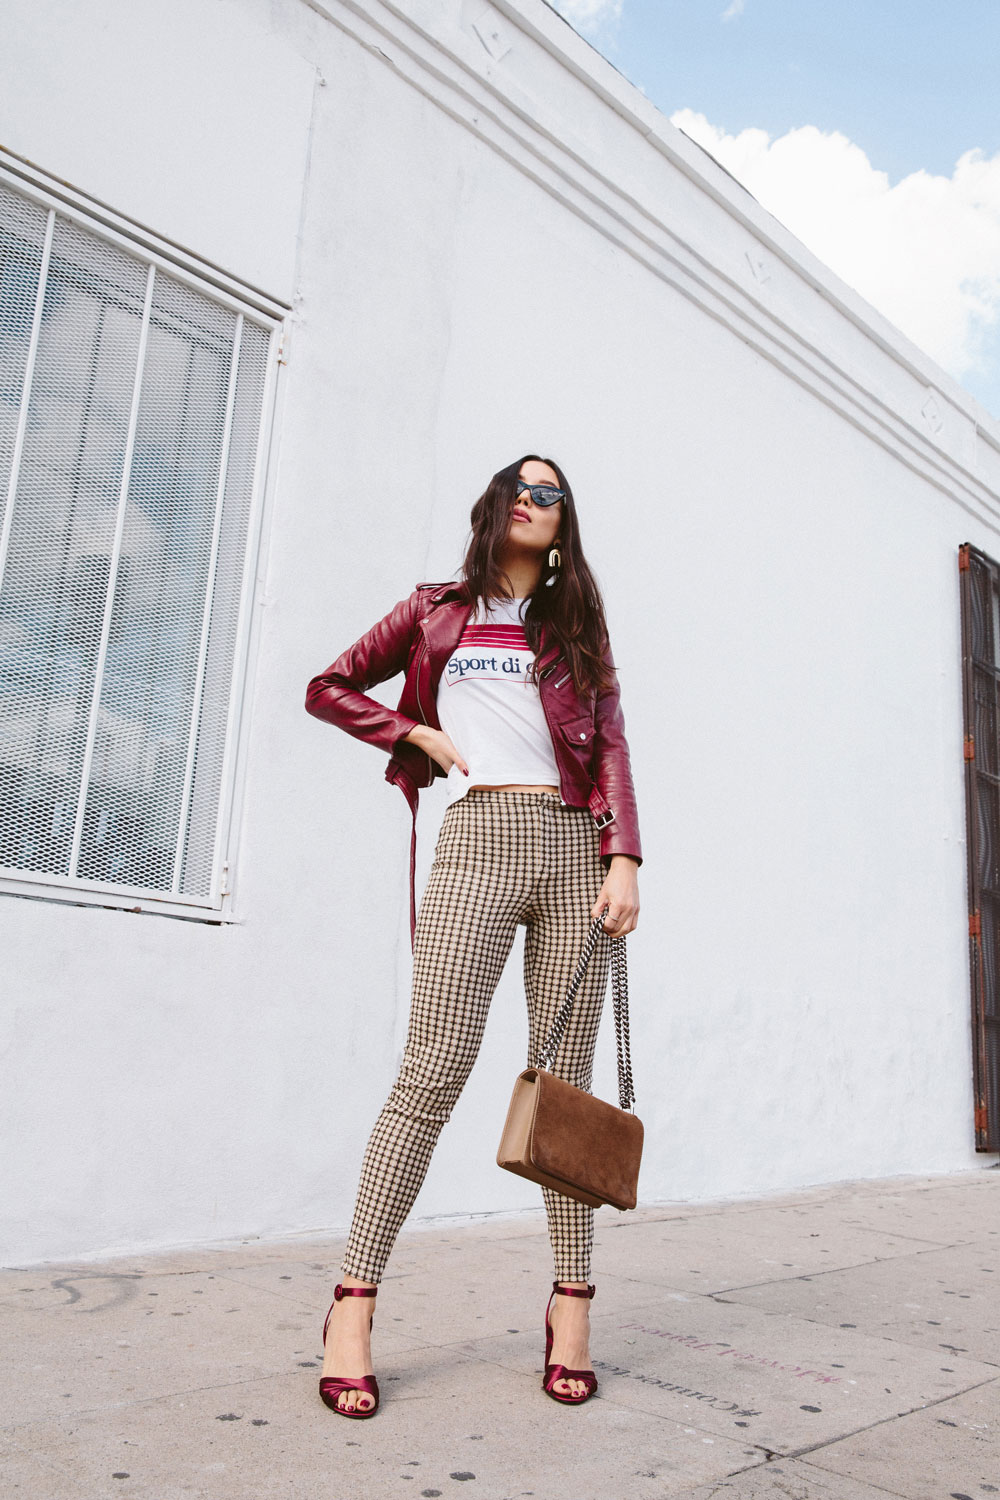 Spring Trend: Patterned Pants